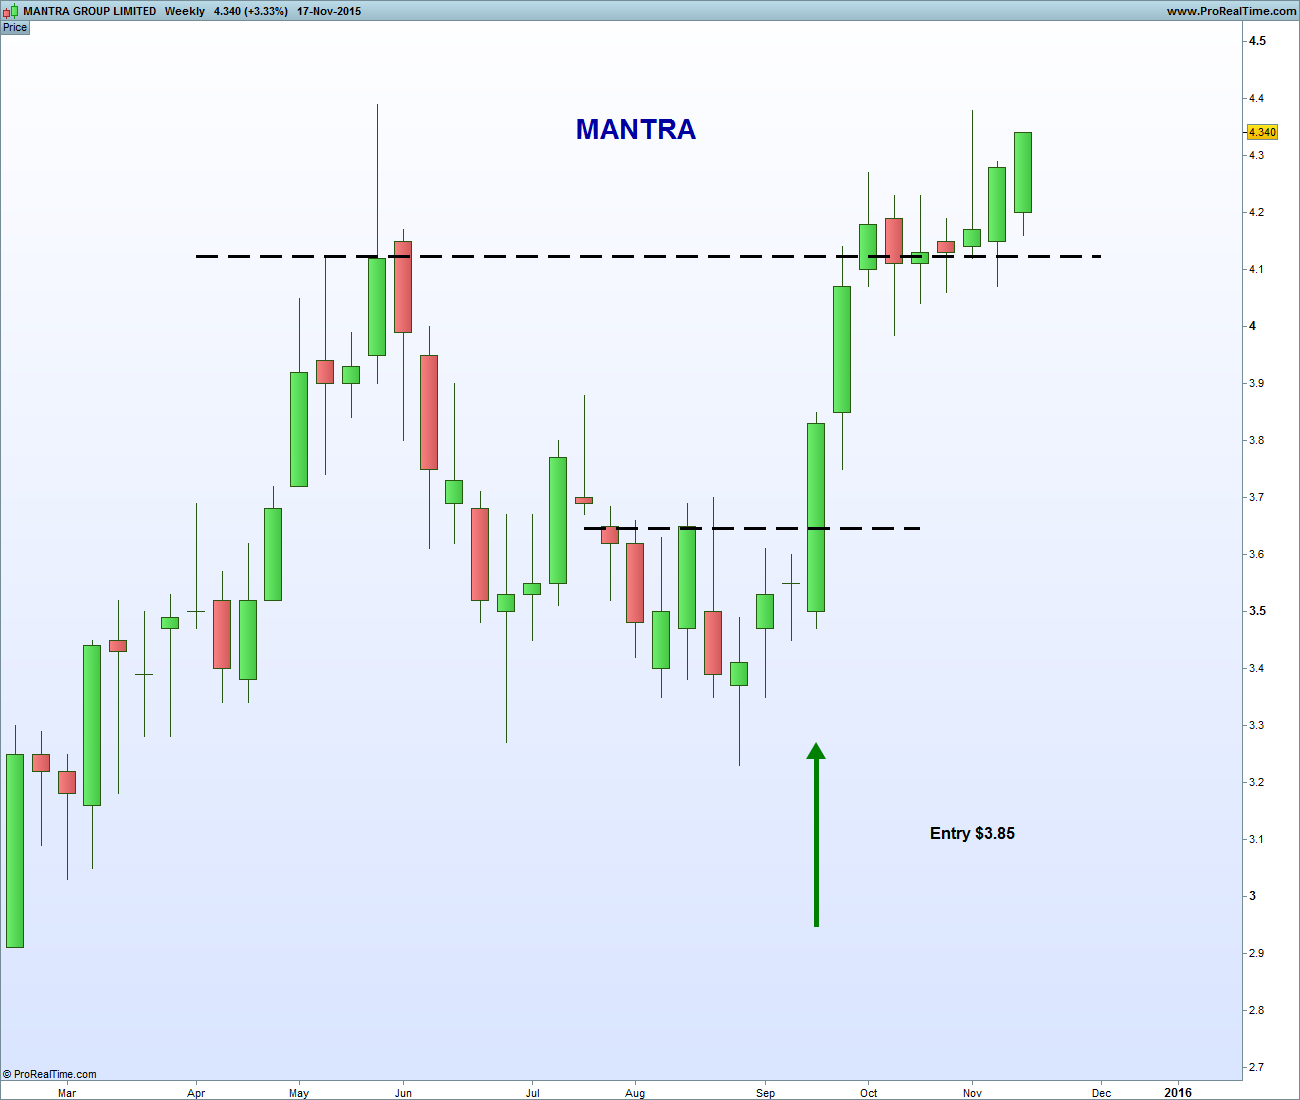 MANTRA GROUP LIMITED